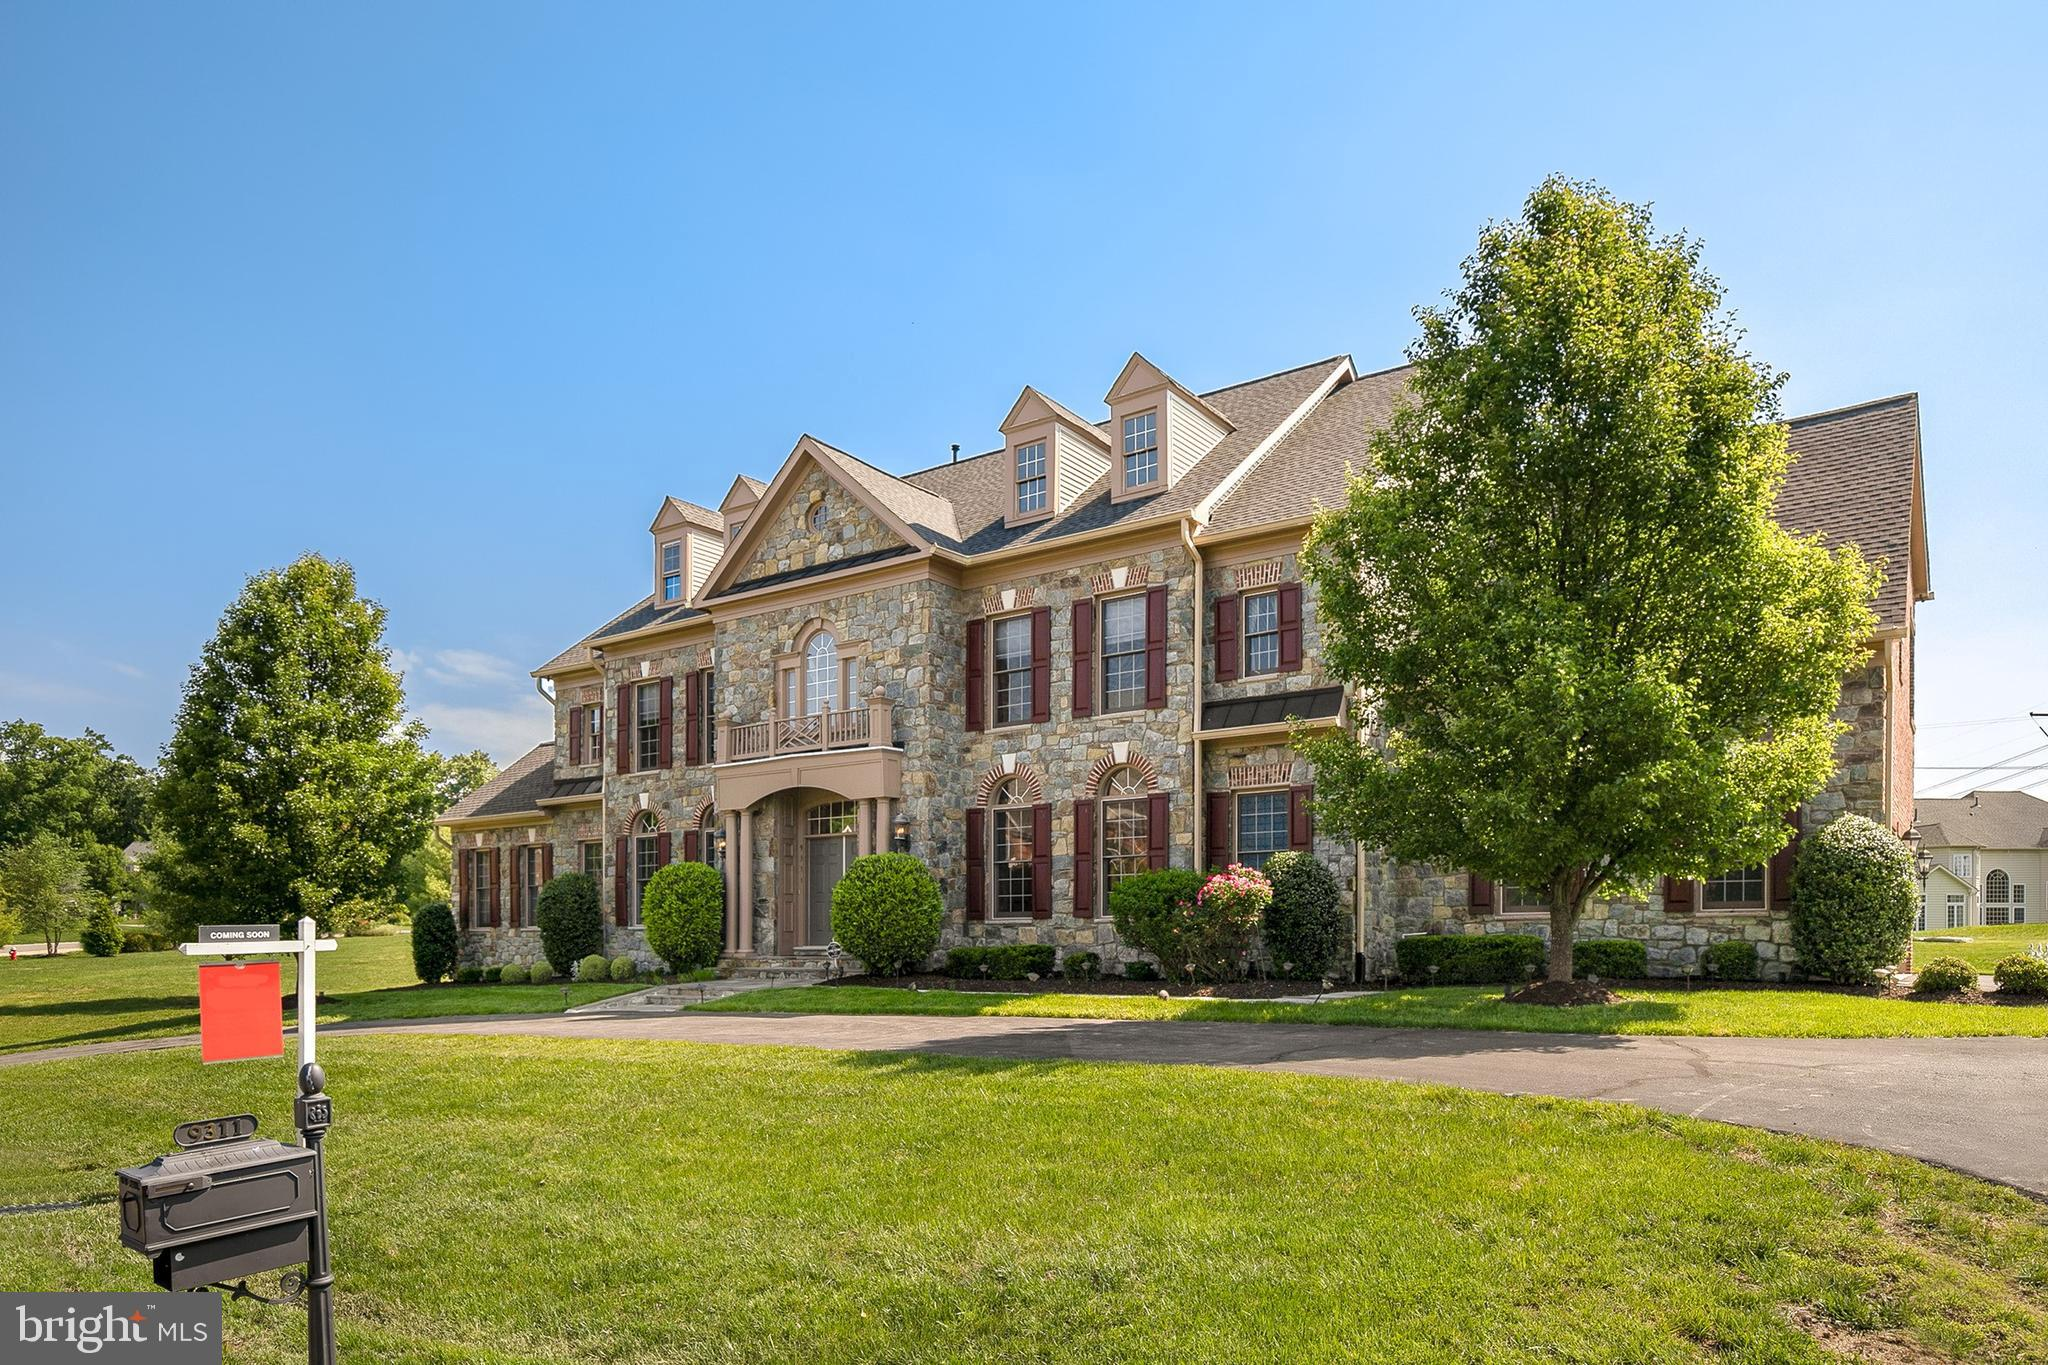 This palatial, stunning, and beautiful home in Fairfax County has it all. The main features include